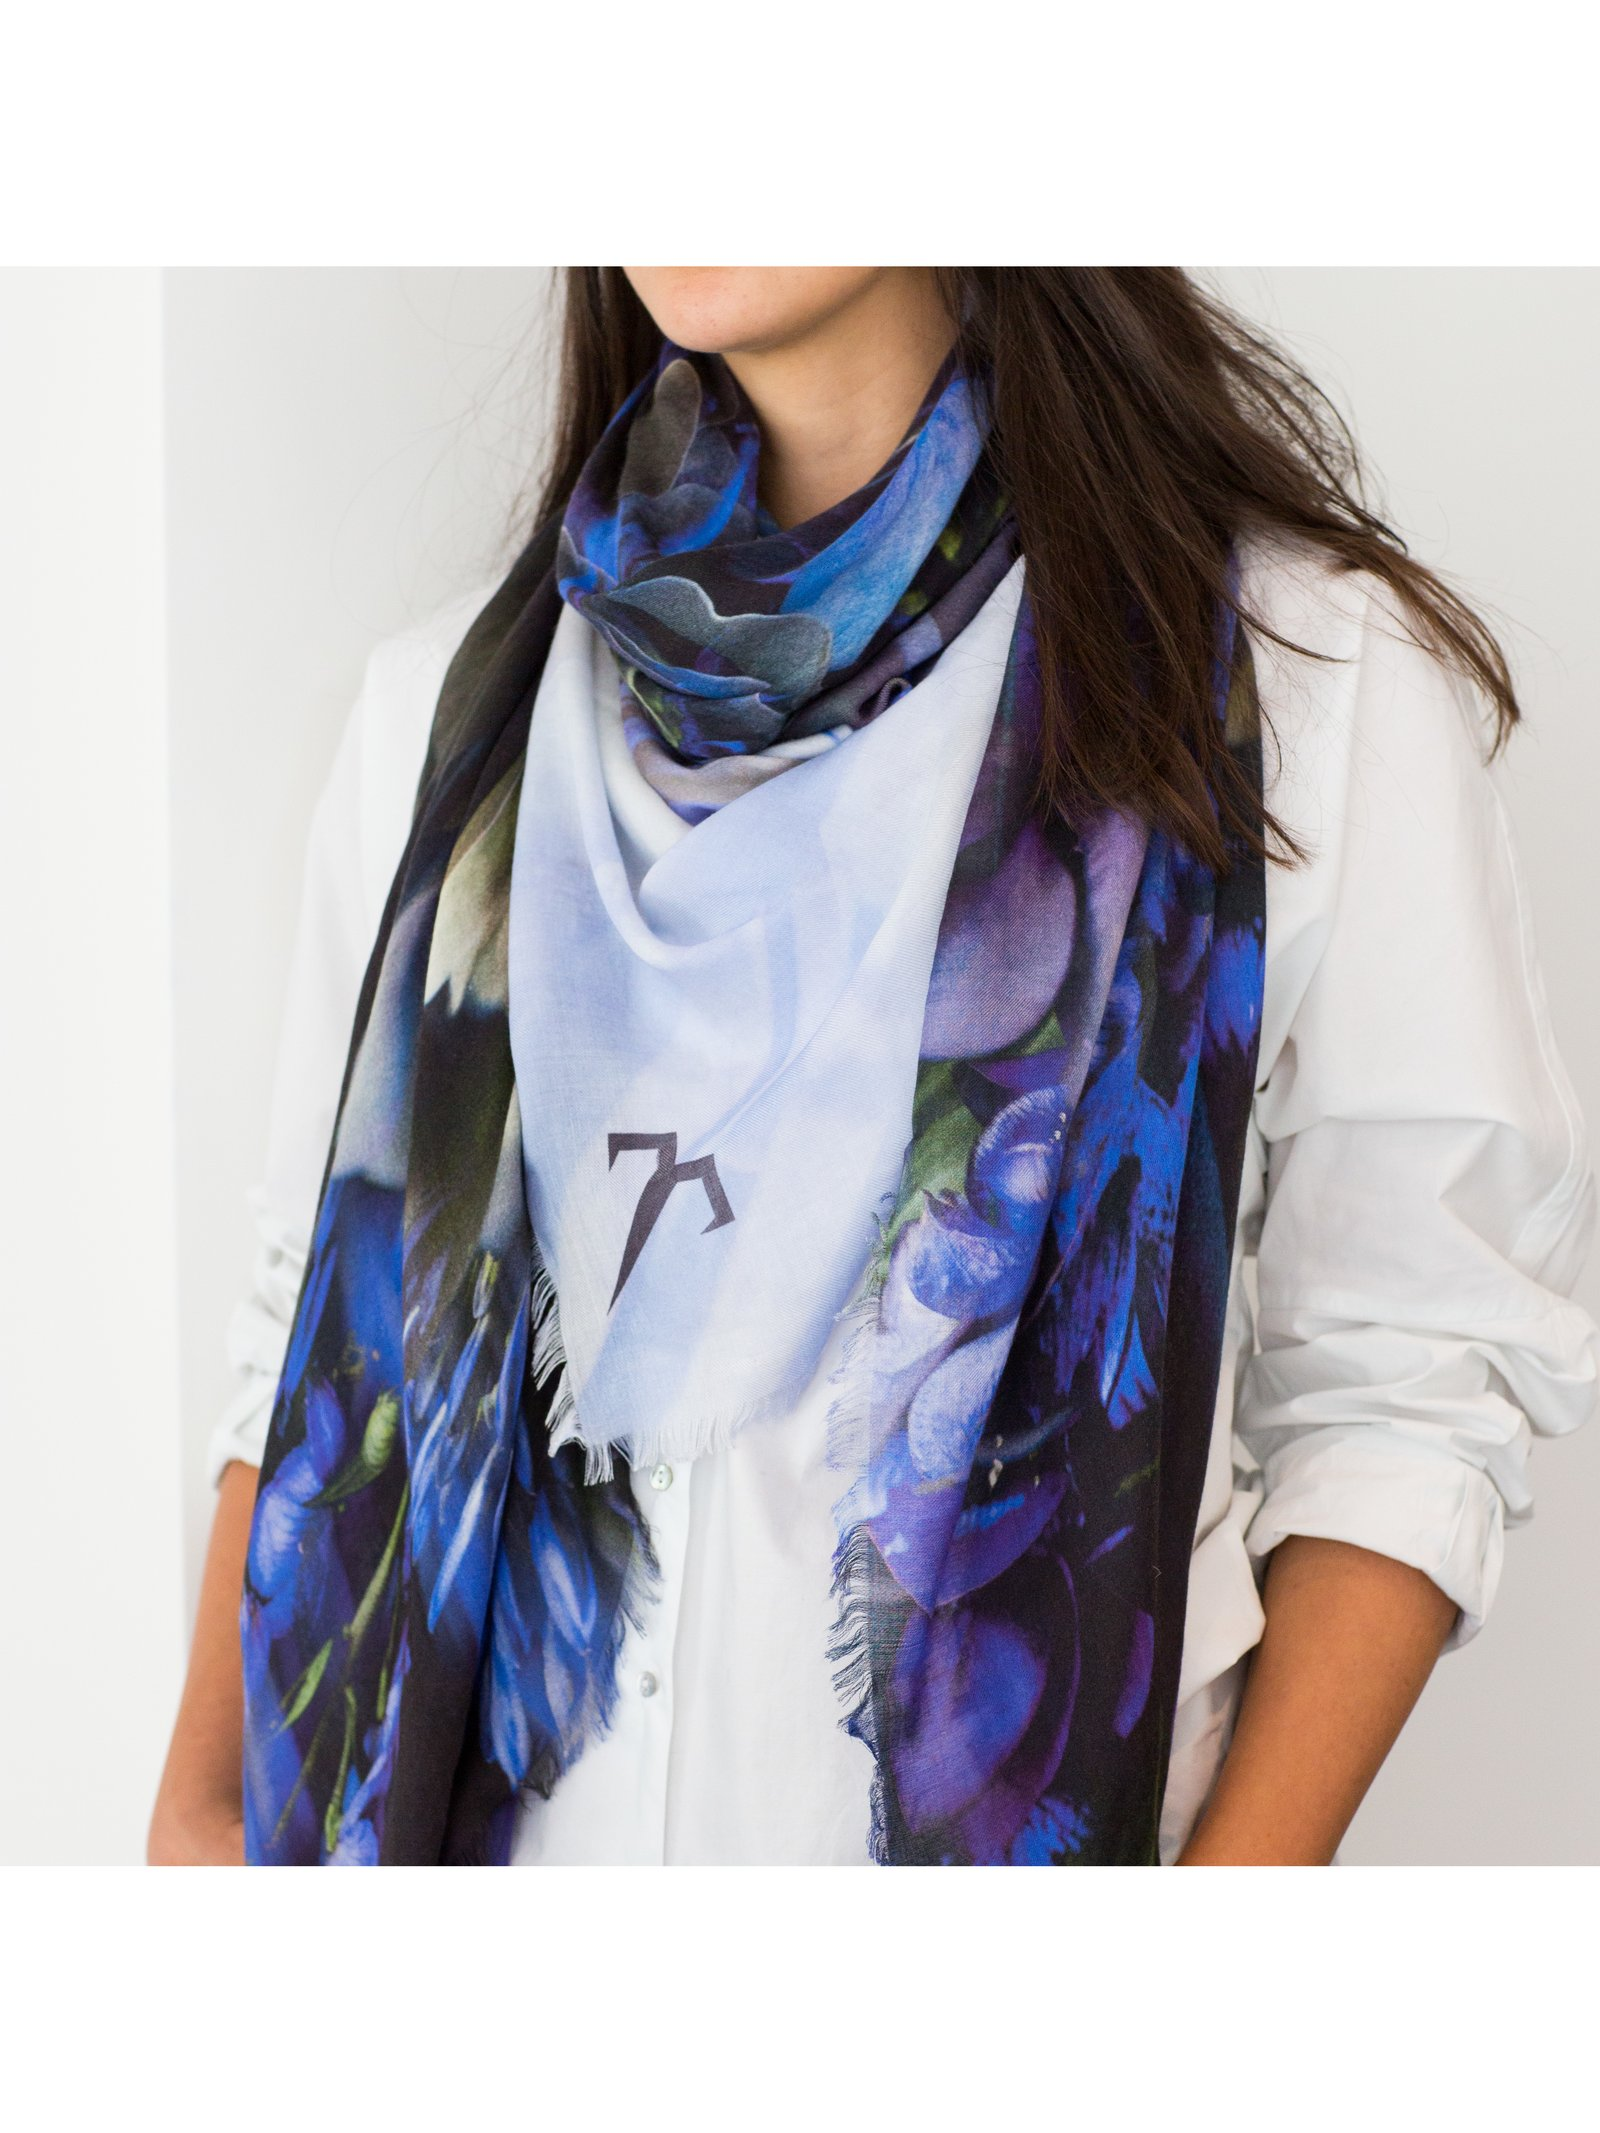 ternary London GRAPHIC CUT LUXURY CASHMERE SCARF